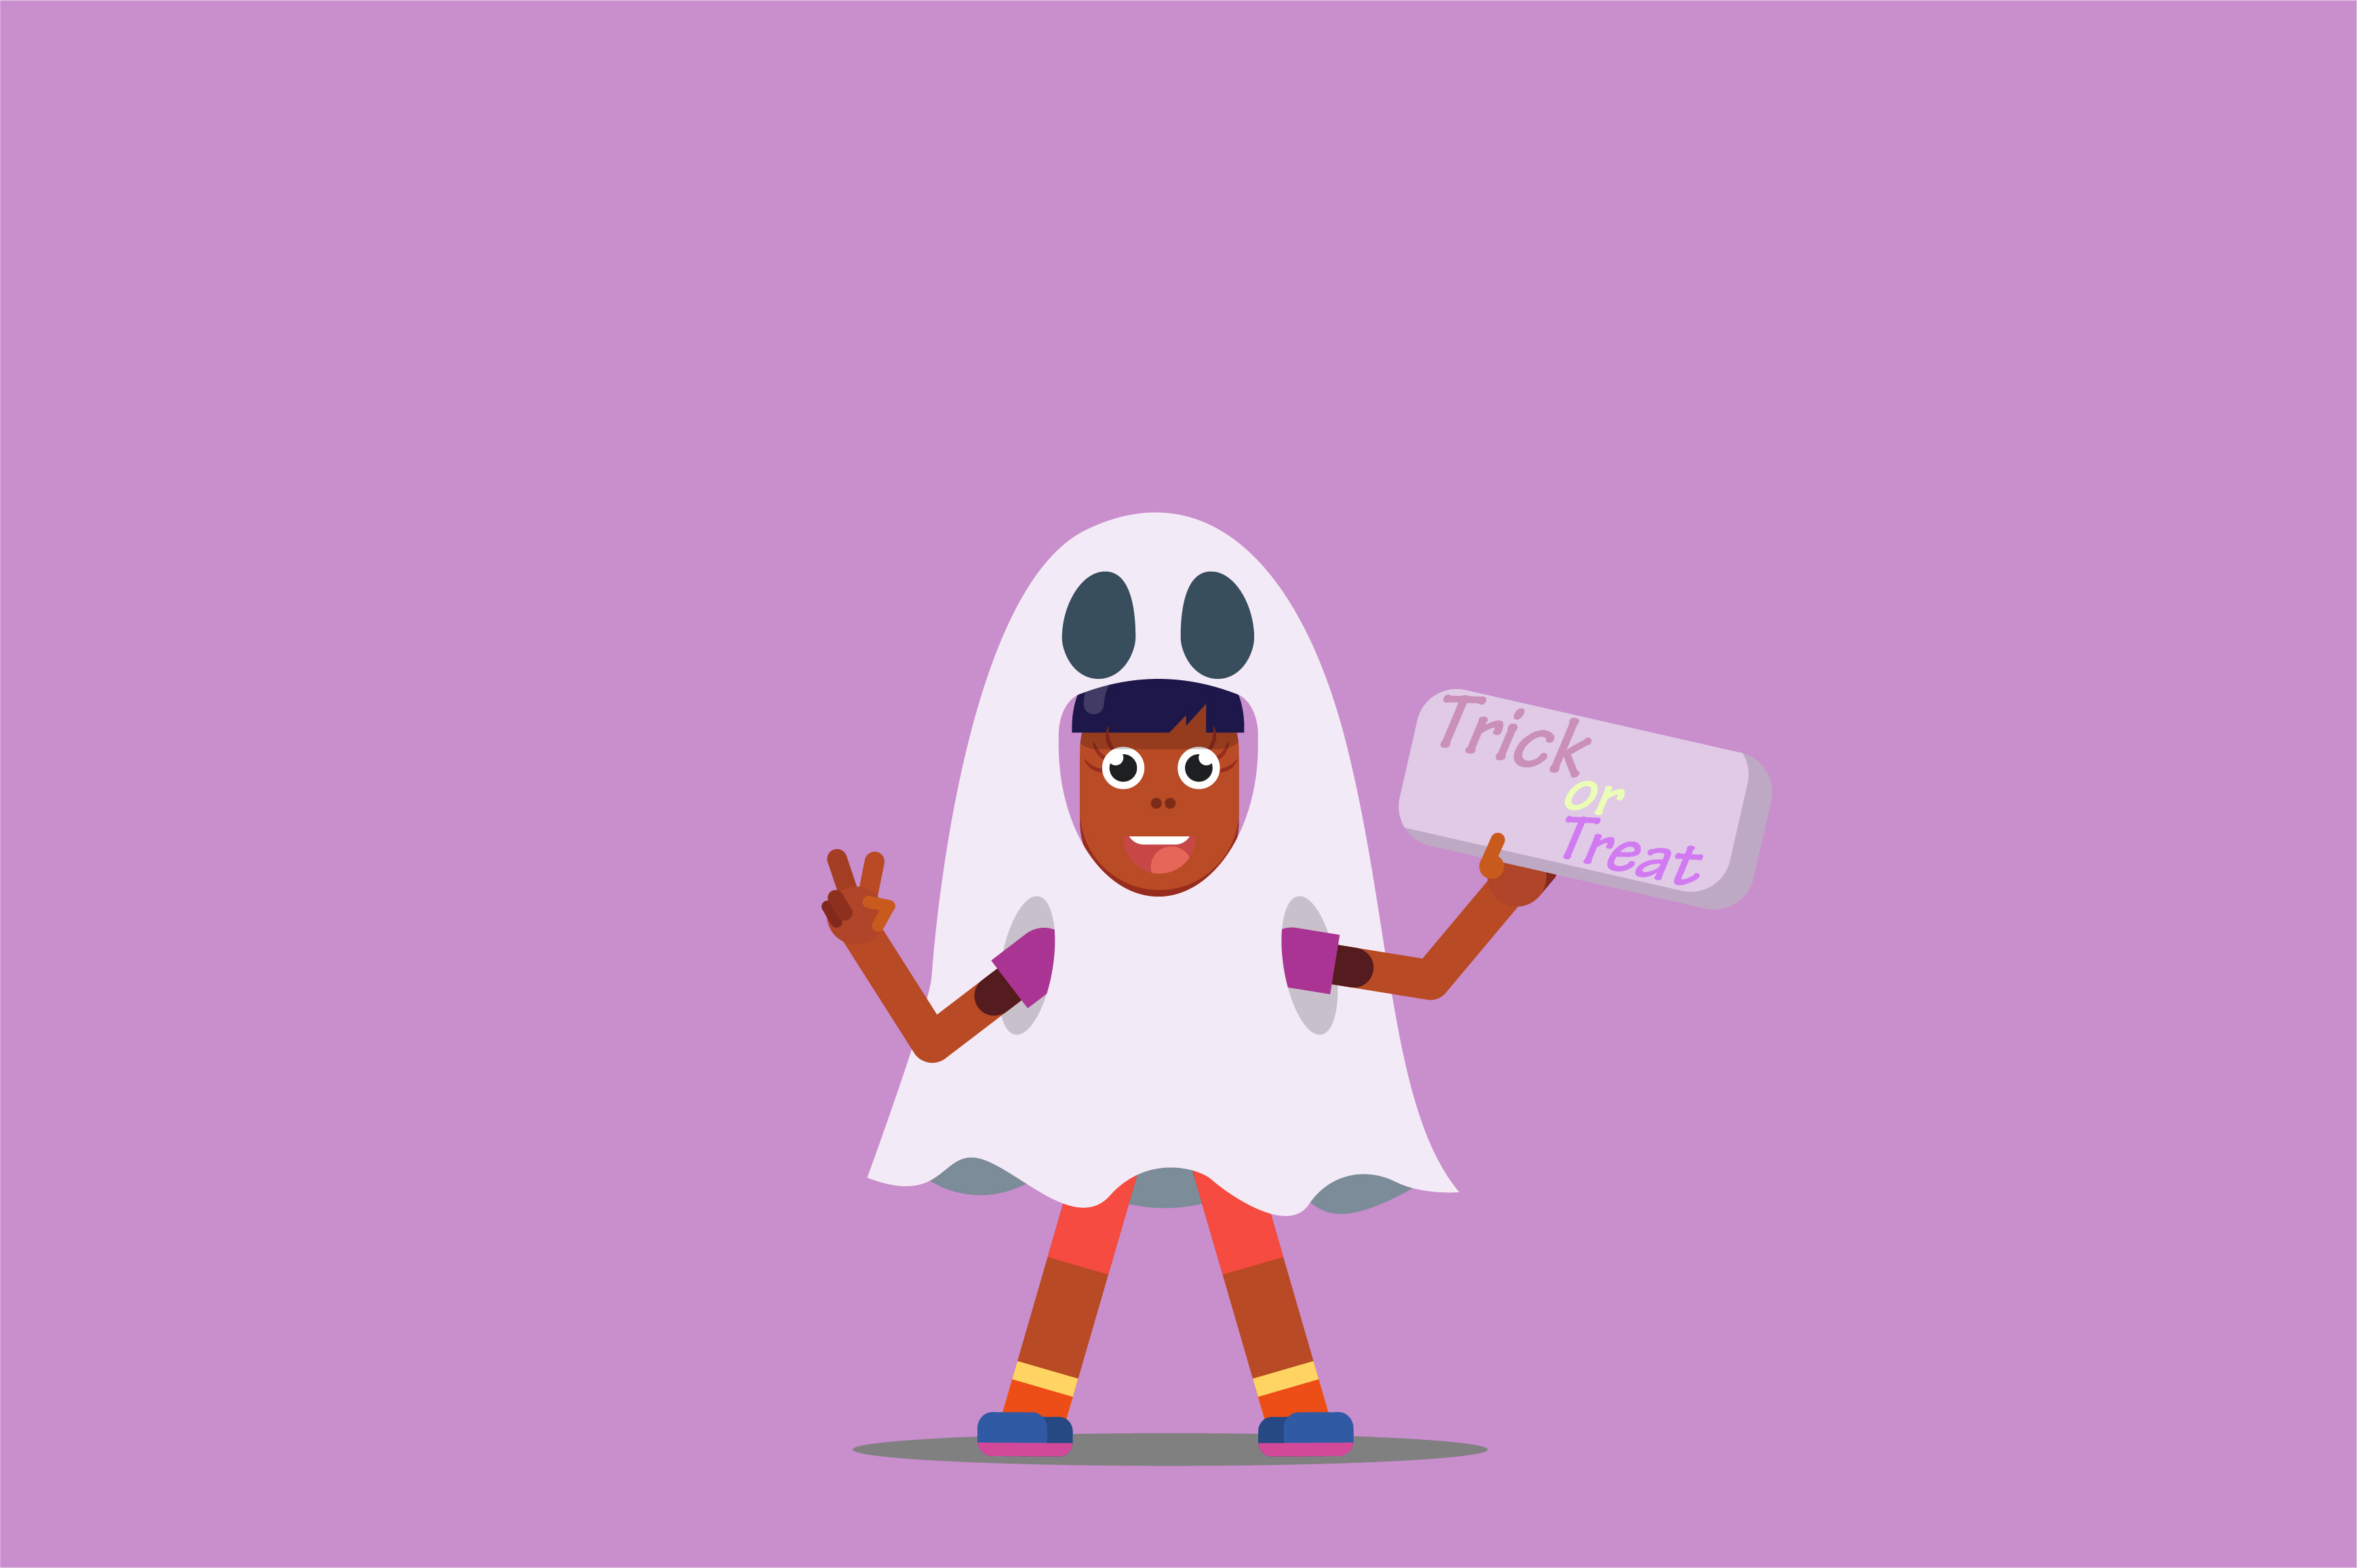 Download Free Halloween Characters Vector Illustration Graphic By Altumfatih for Cricut Explore, Silhouette and other cutting machines.